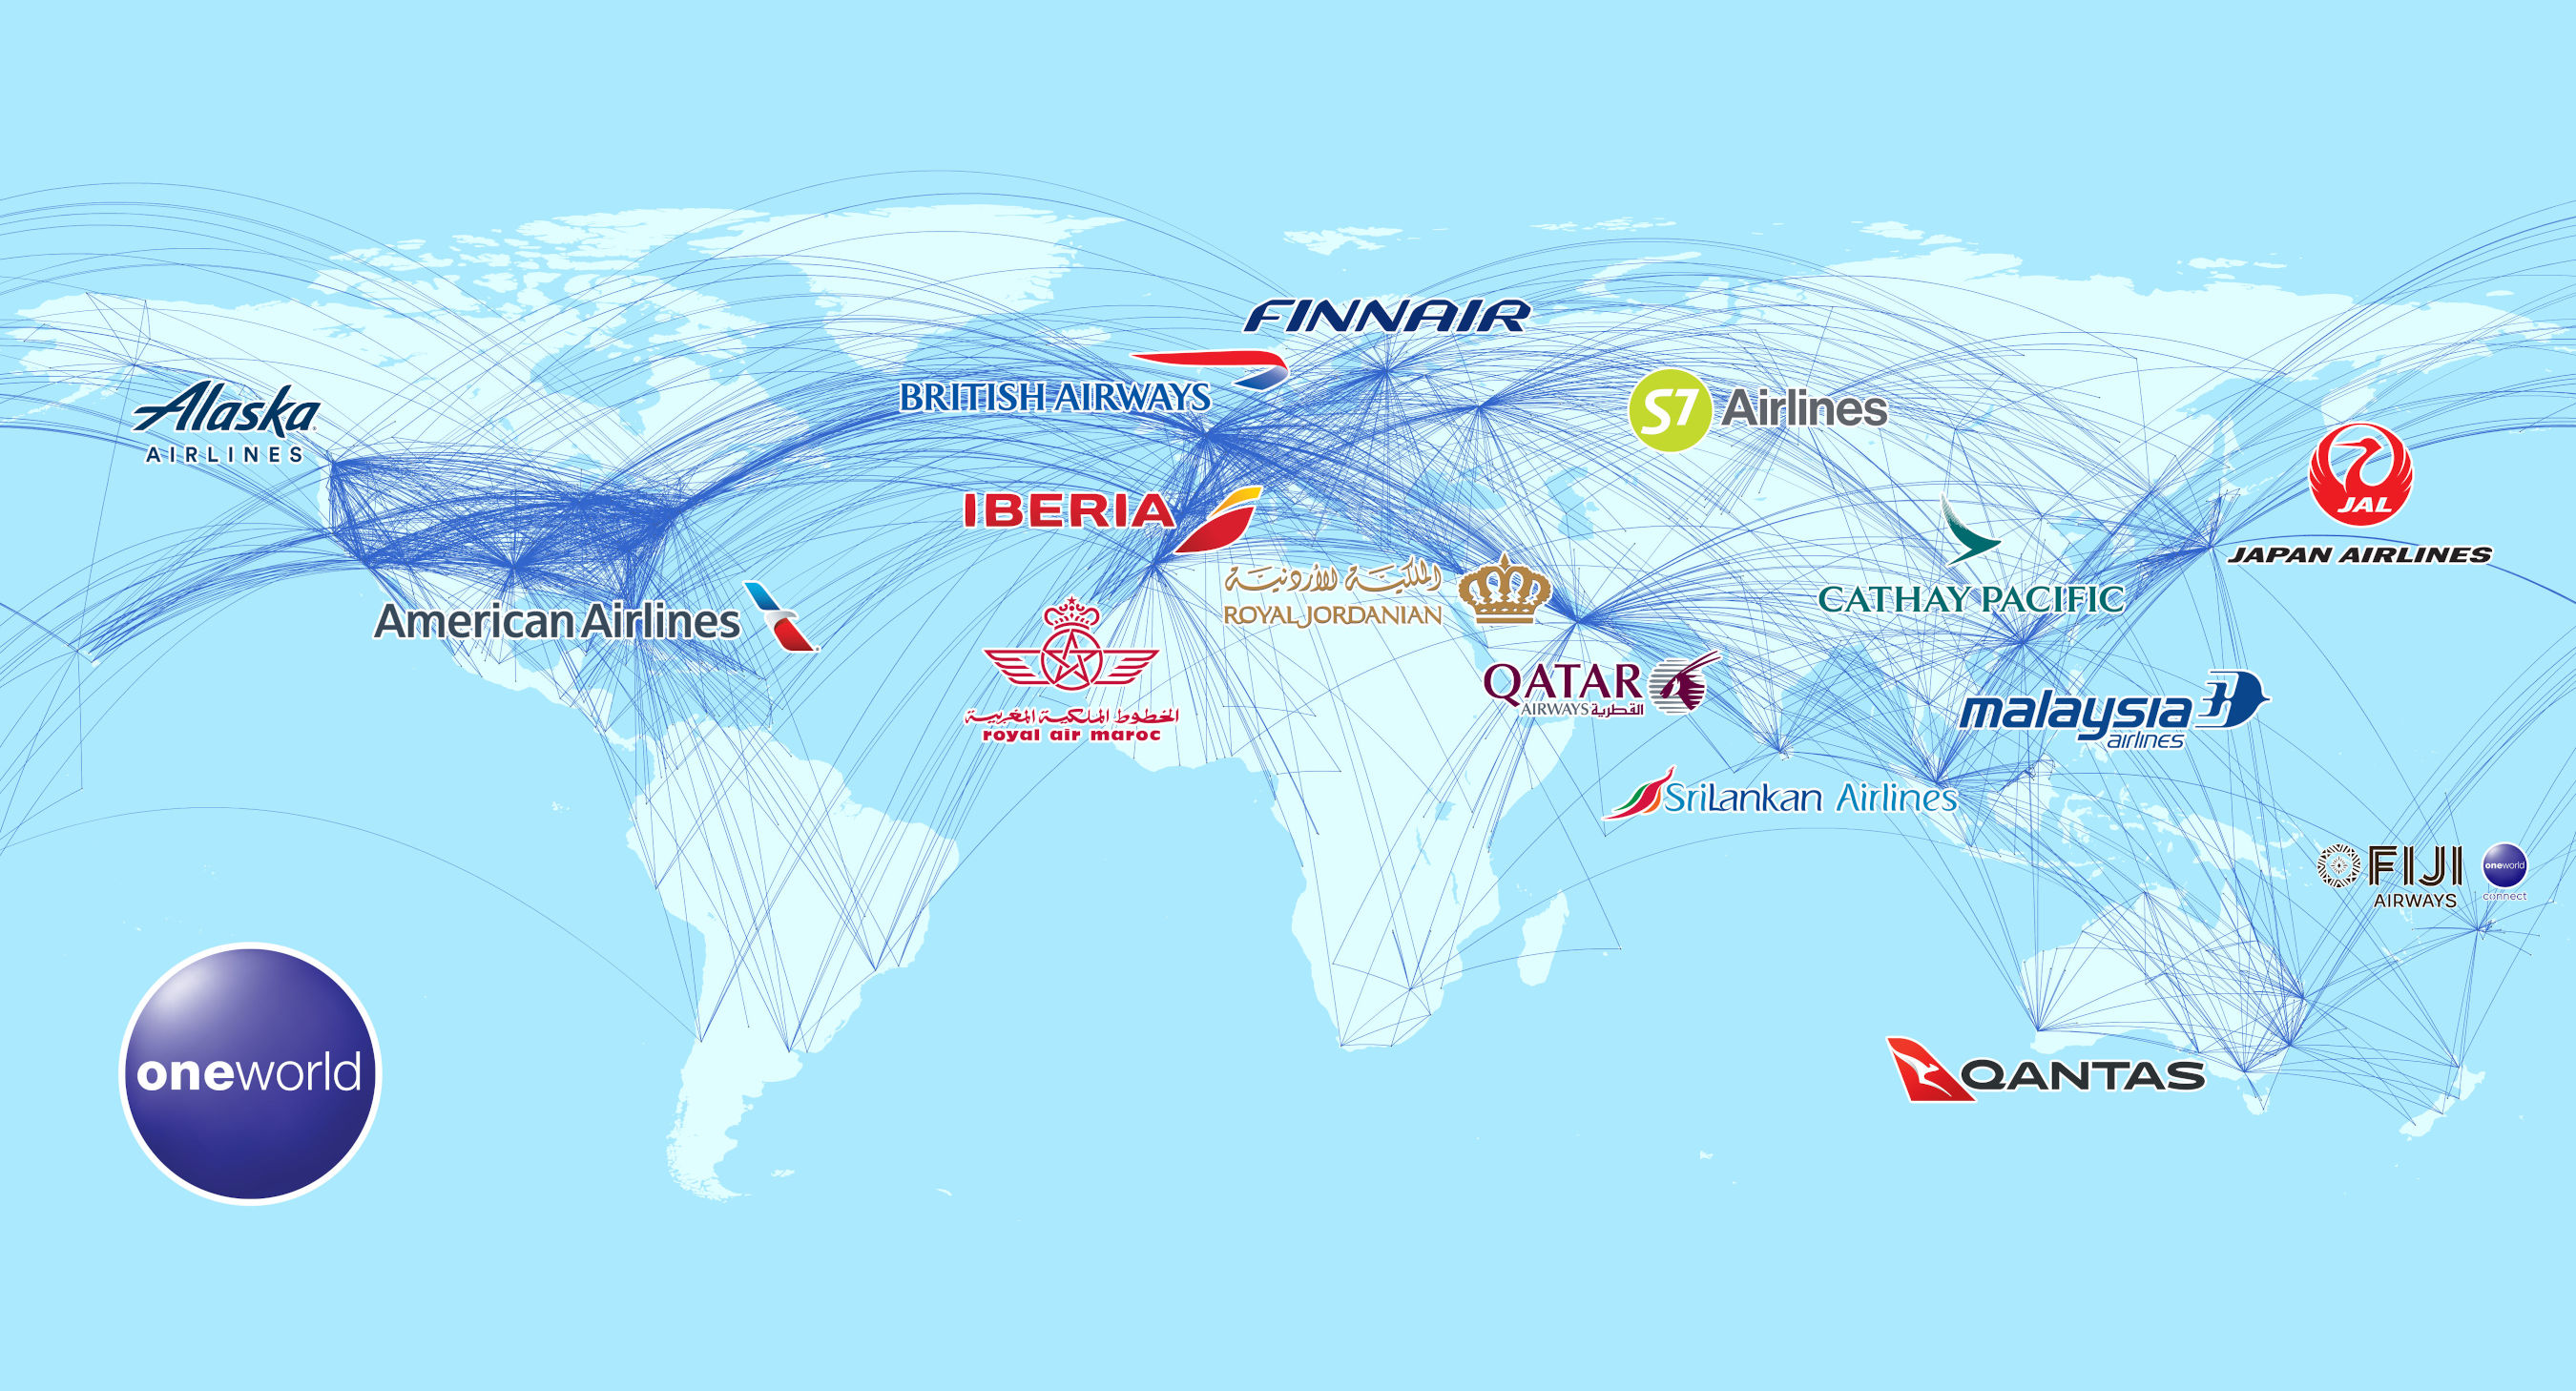 oneworld provides a global network of flights across 14 world-class airlines. With its full membership, Alaska Airlines will add seven new airline partners and enhance its six existing partnerships.